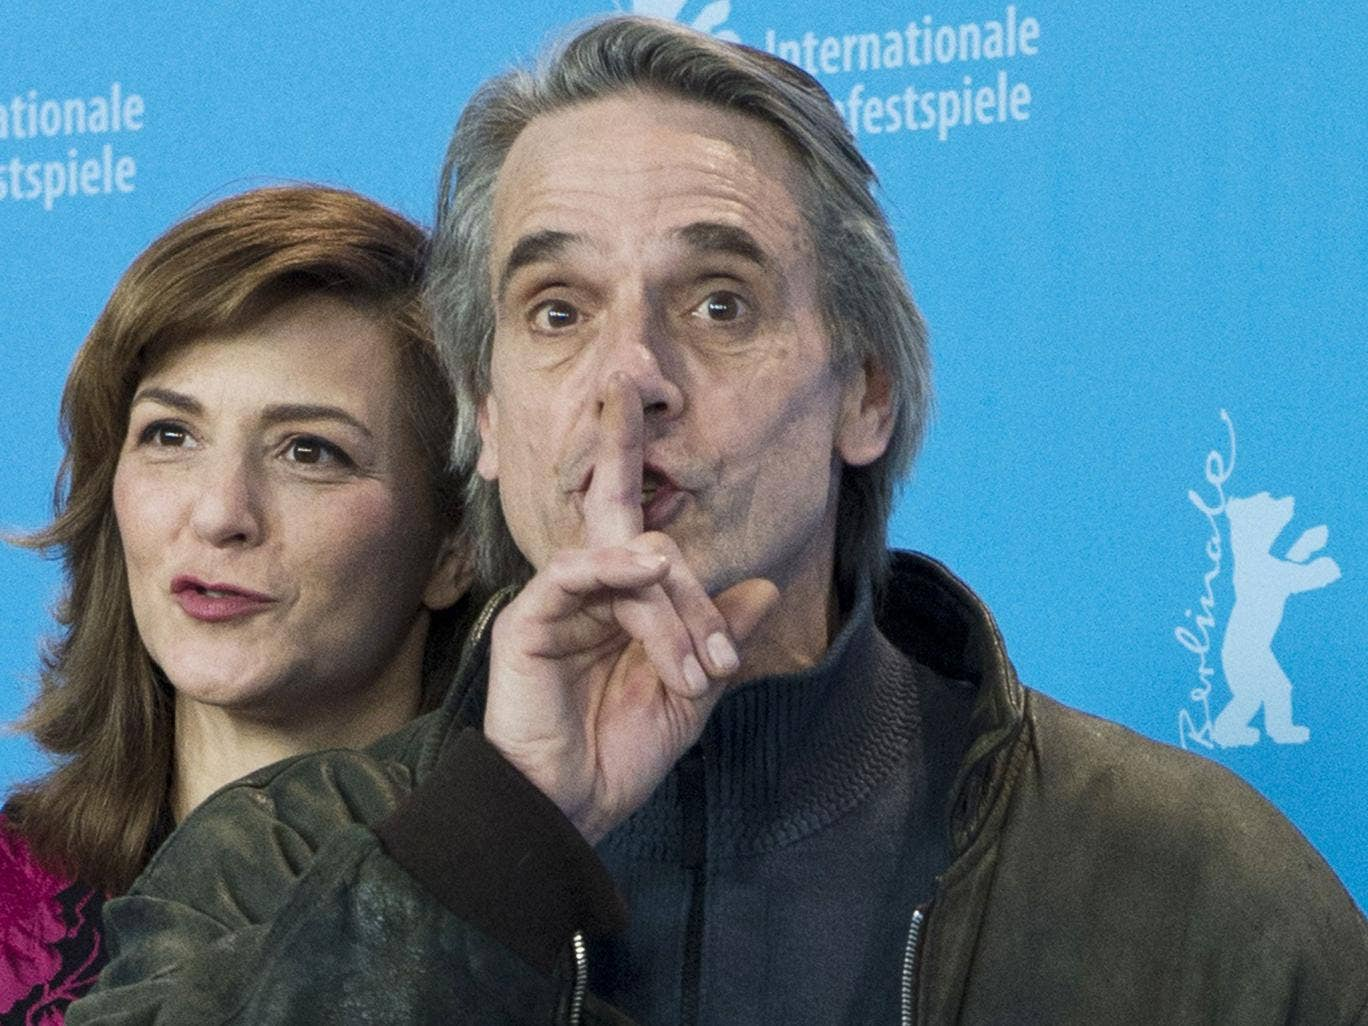 Jeremy Irons has form in shooting his mouth off